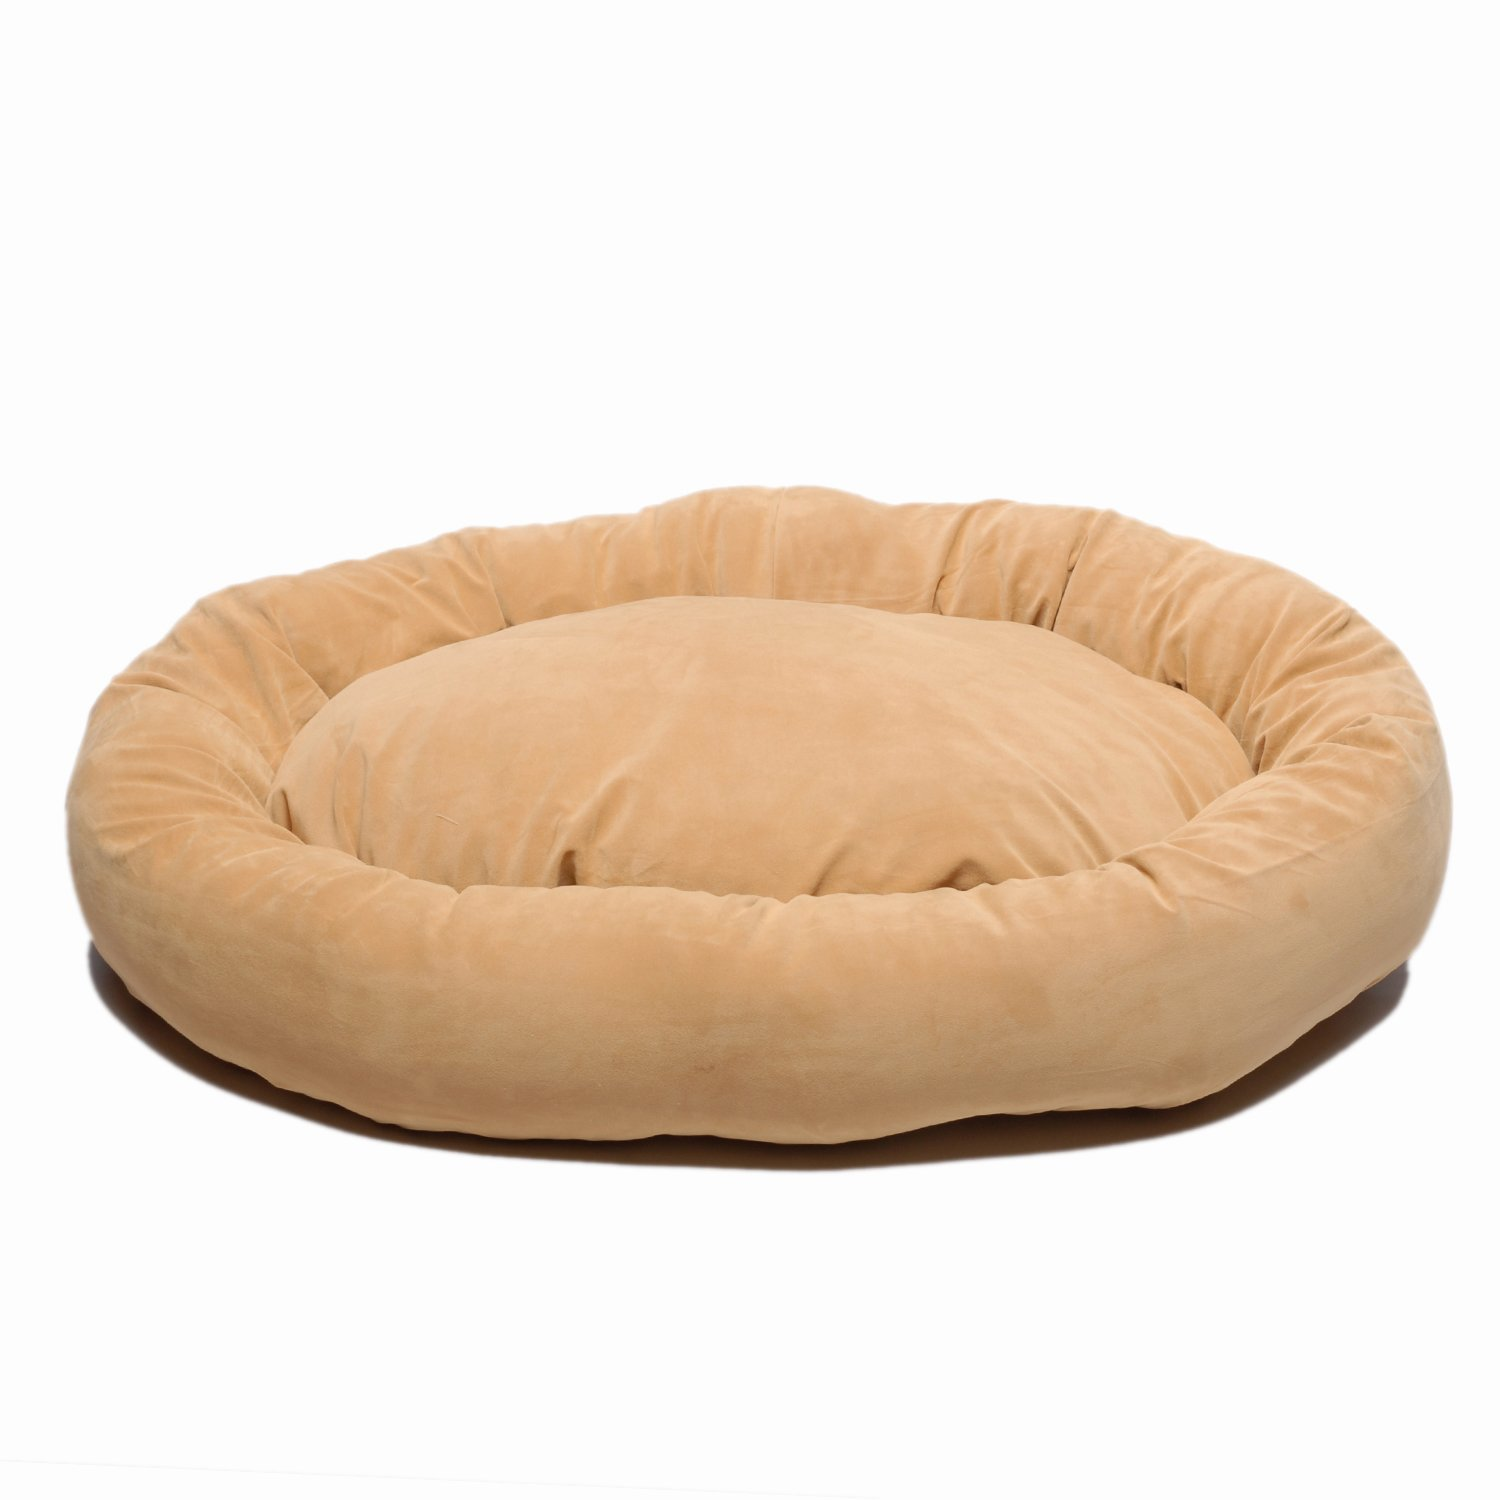 CPC Microfiber Small Bagel Bed, Caramel